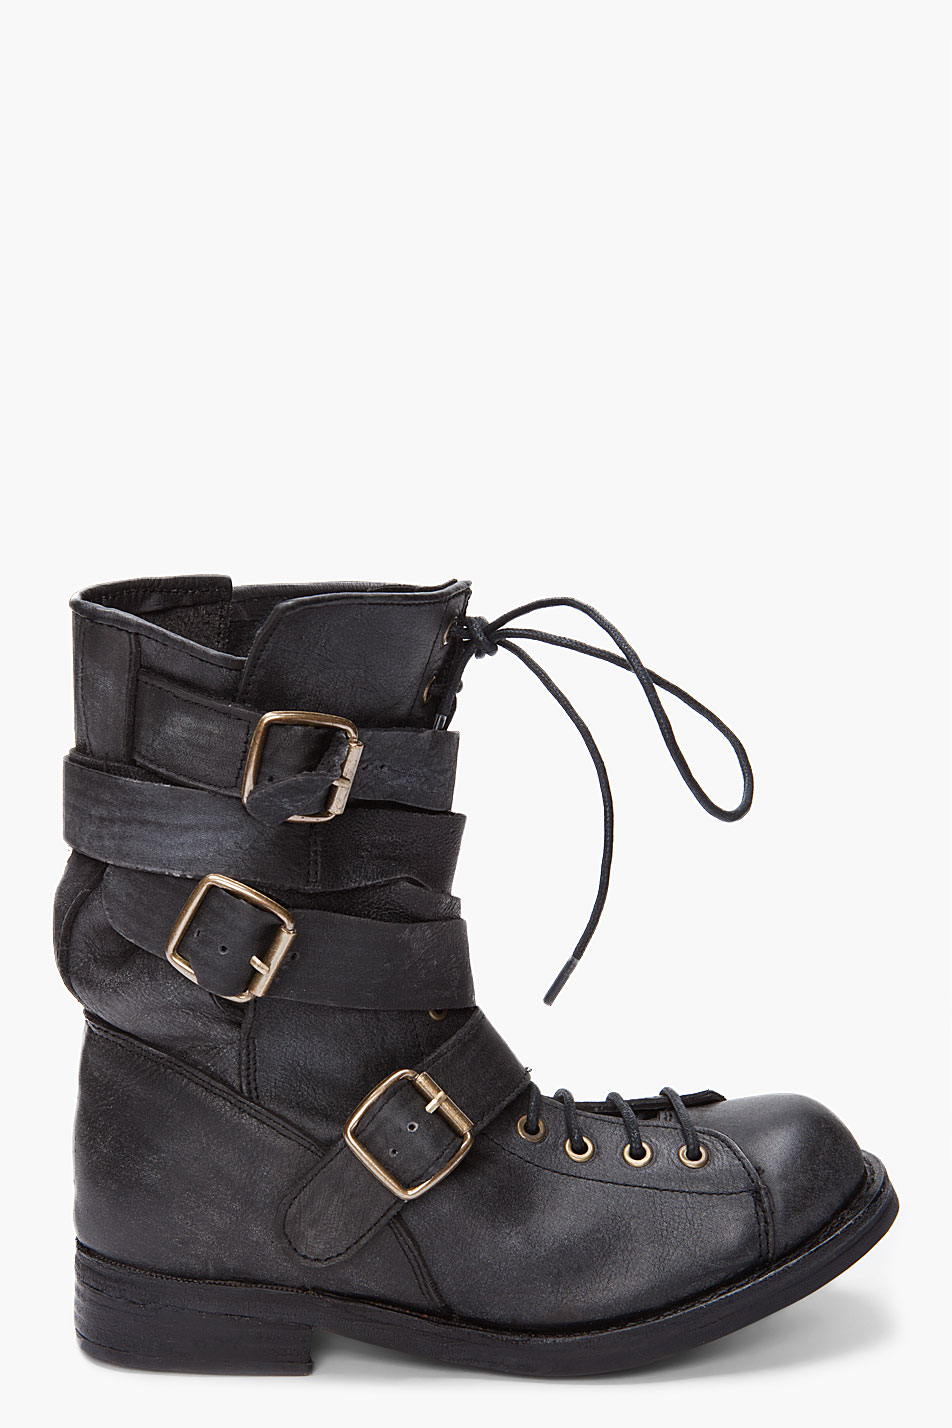 Jeffrey Campbell Black Fall Man Boots For Men Lyst